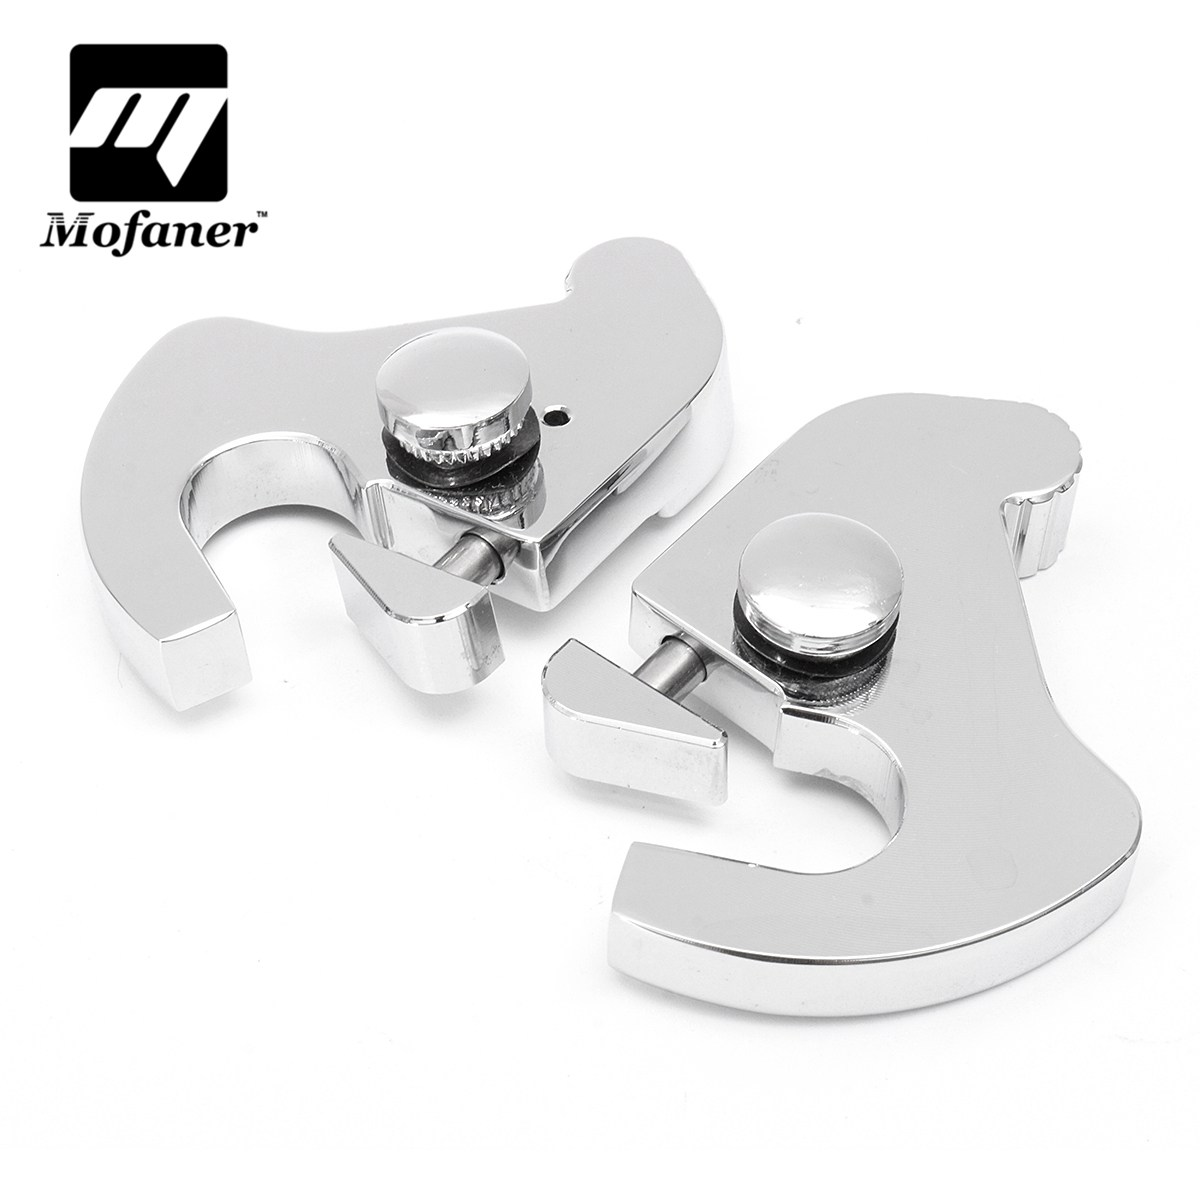 1Pair Motorcycle Sissy Bar Luggage Rack Latch Clip Kit For Harley Electra Street Glide Softail Night Train Fat Boy 883 1200